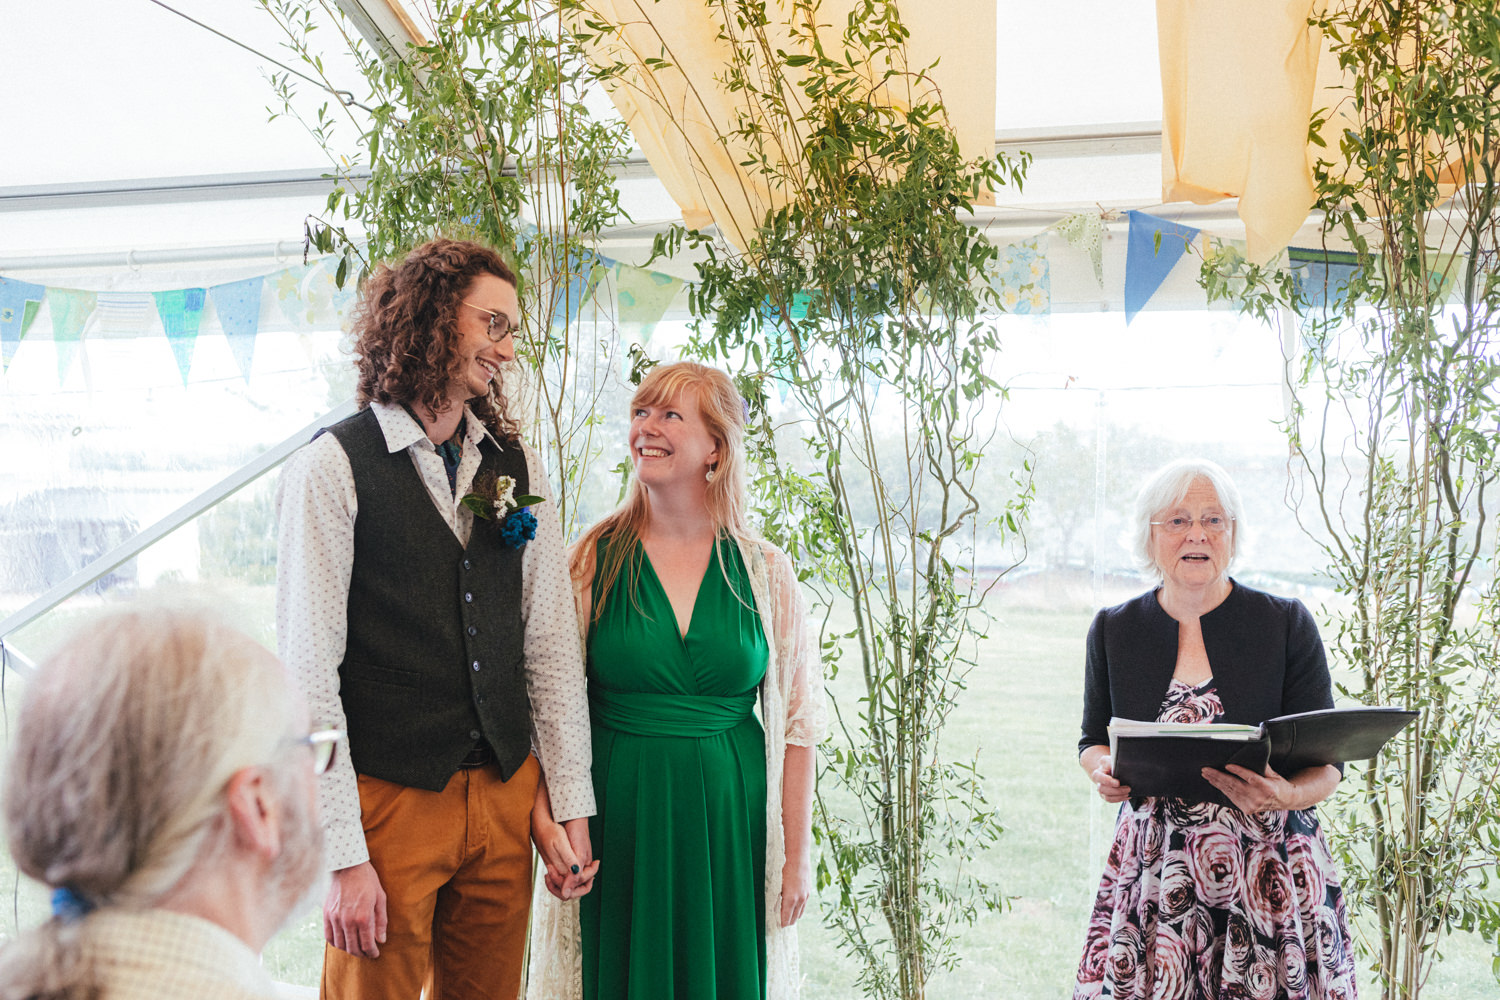 Outdoor Wedding Photography Devon, devon wedding, devon farm wedding, farm wedding photographer, devon wedding photographer, eco wedding, green wedding, green wedding dress, bride & groom, wedding ceremony, alternative wedding, relaxed wedding